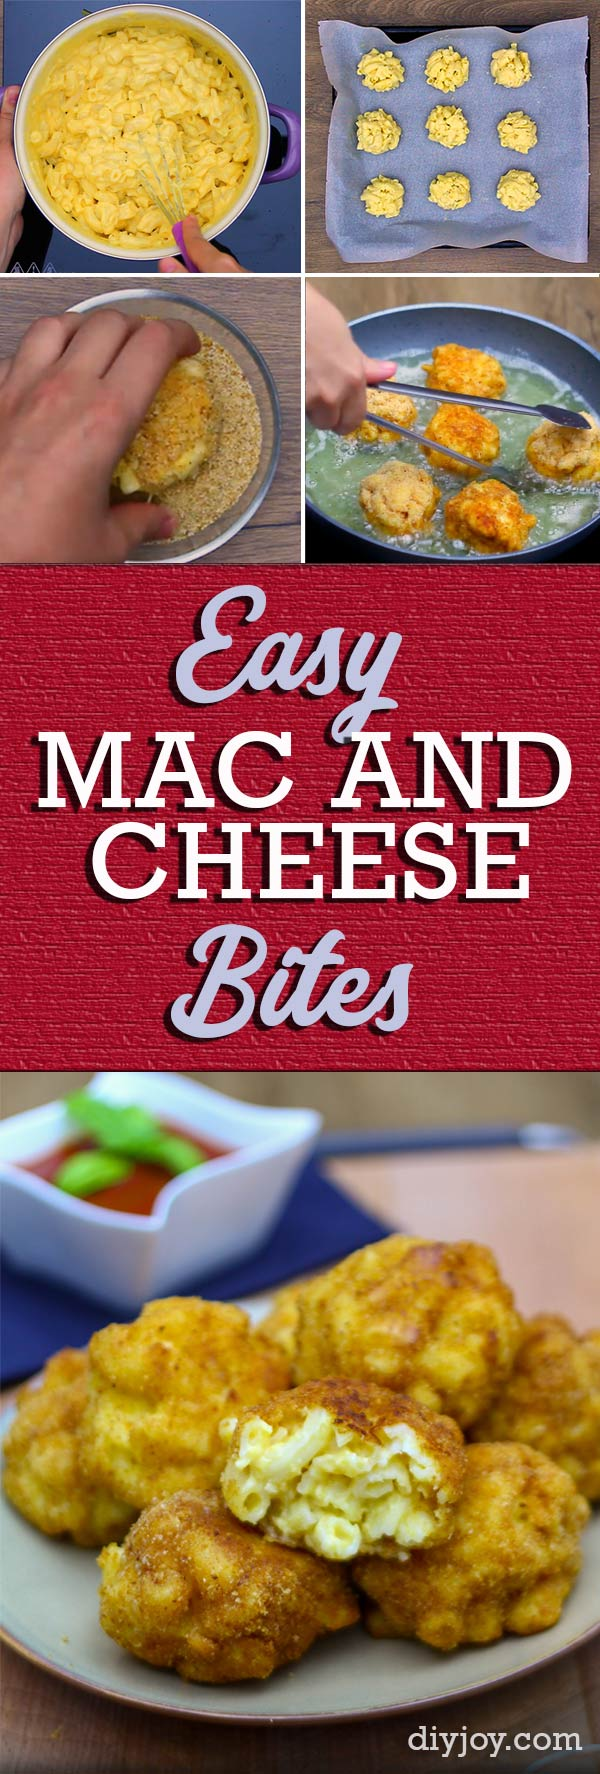 Macaroni and Cheese Recipes - Easy Mac and Cheese Bites - Best Mac and Cheese Recipe - Baked, Crockpot, Stovetop and Easy, Quick Variations - Homemade, Creamy Sauce - Pioneer Woman Favorites - Velveets Cheddar and 3 Cheese Bacon, Breadcrumbs http://diyjoy.com/mac-and-cheese-recipes